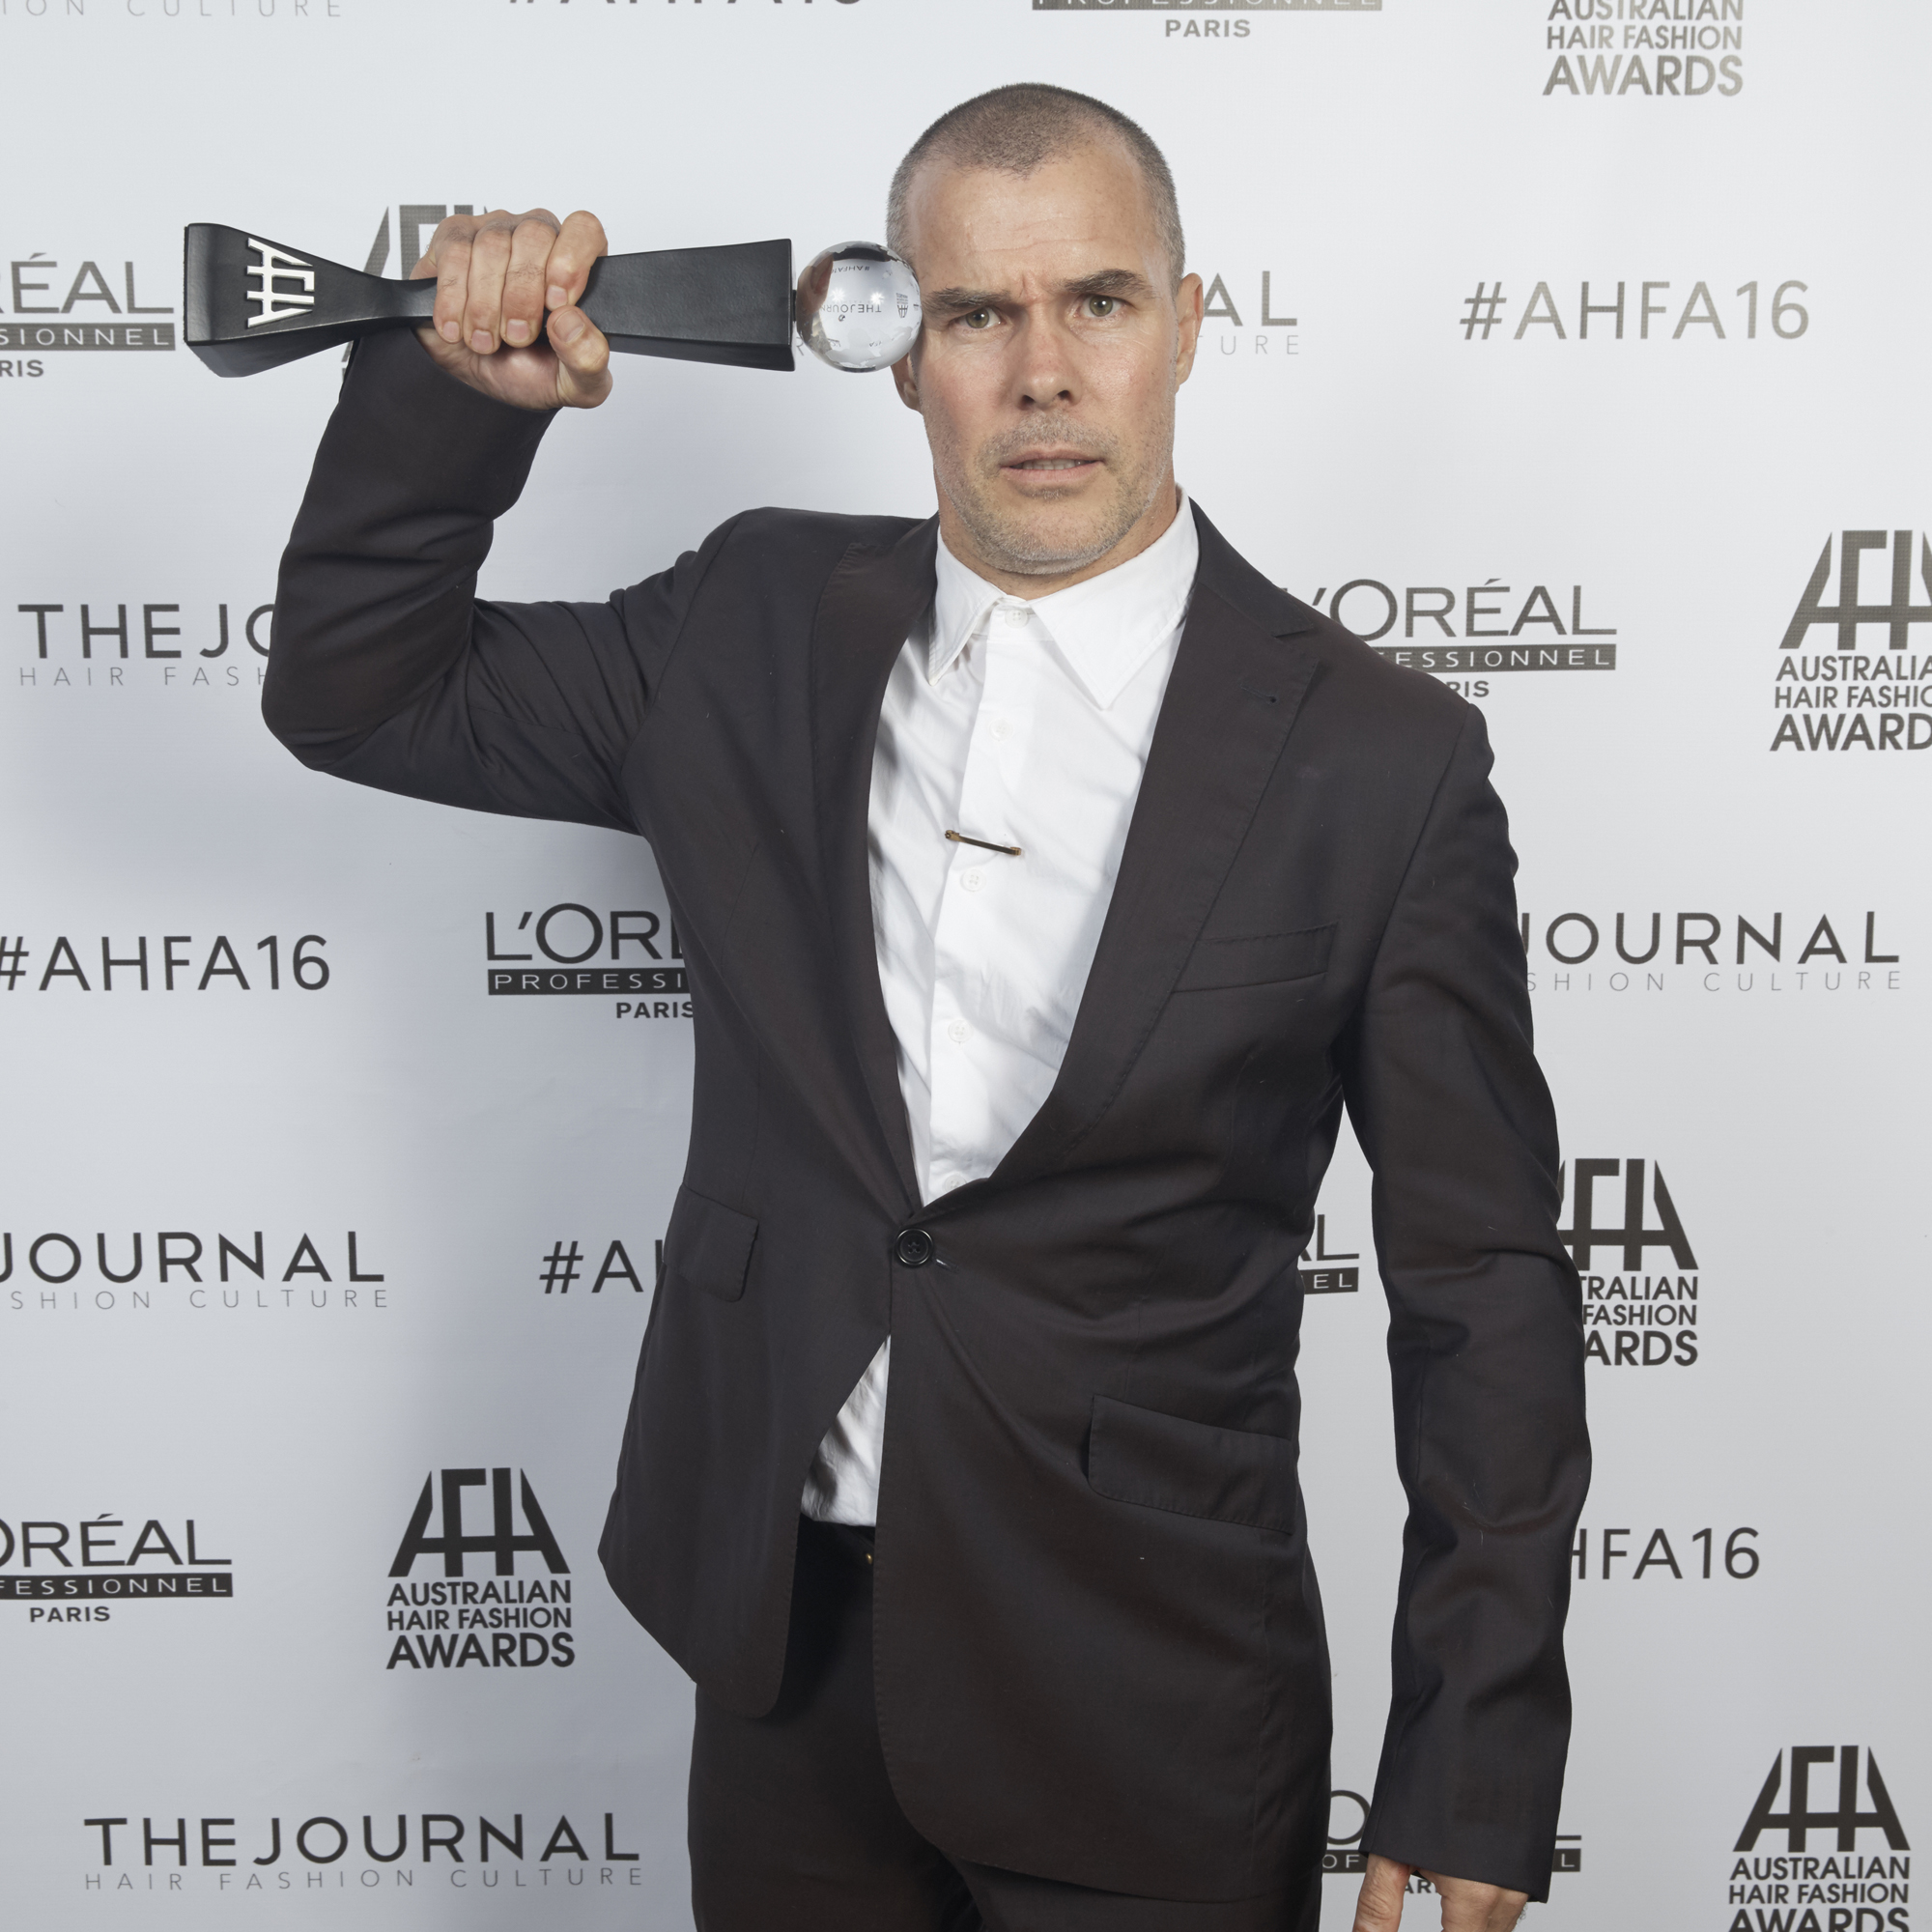 AHFA – Session Stylist of the Year